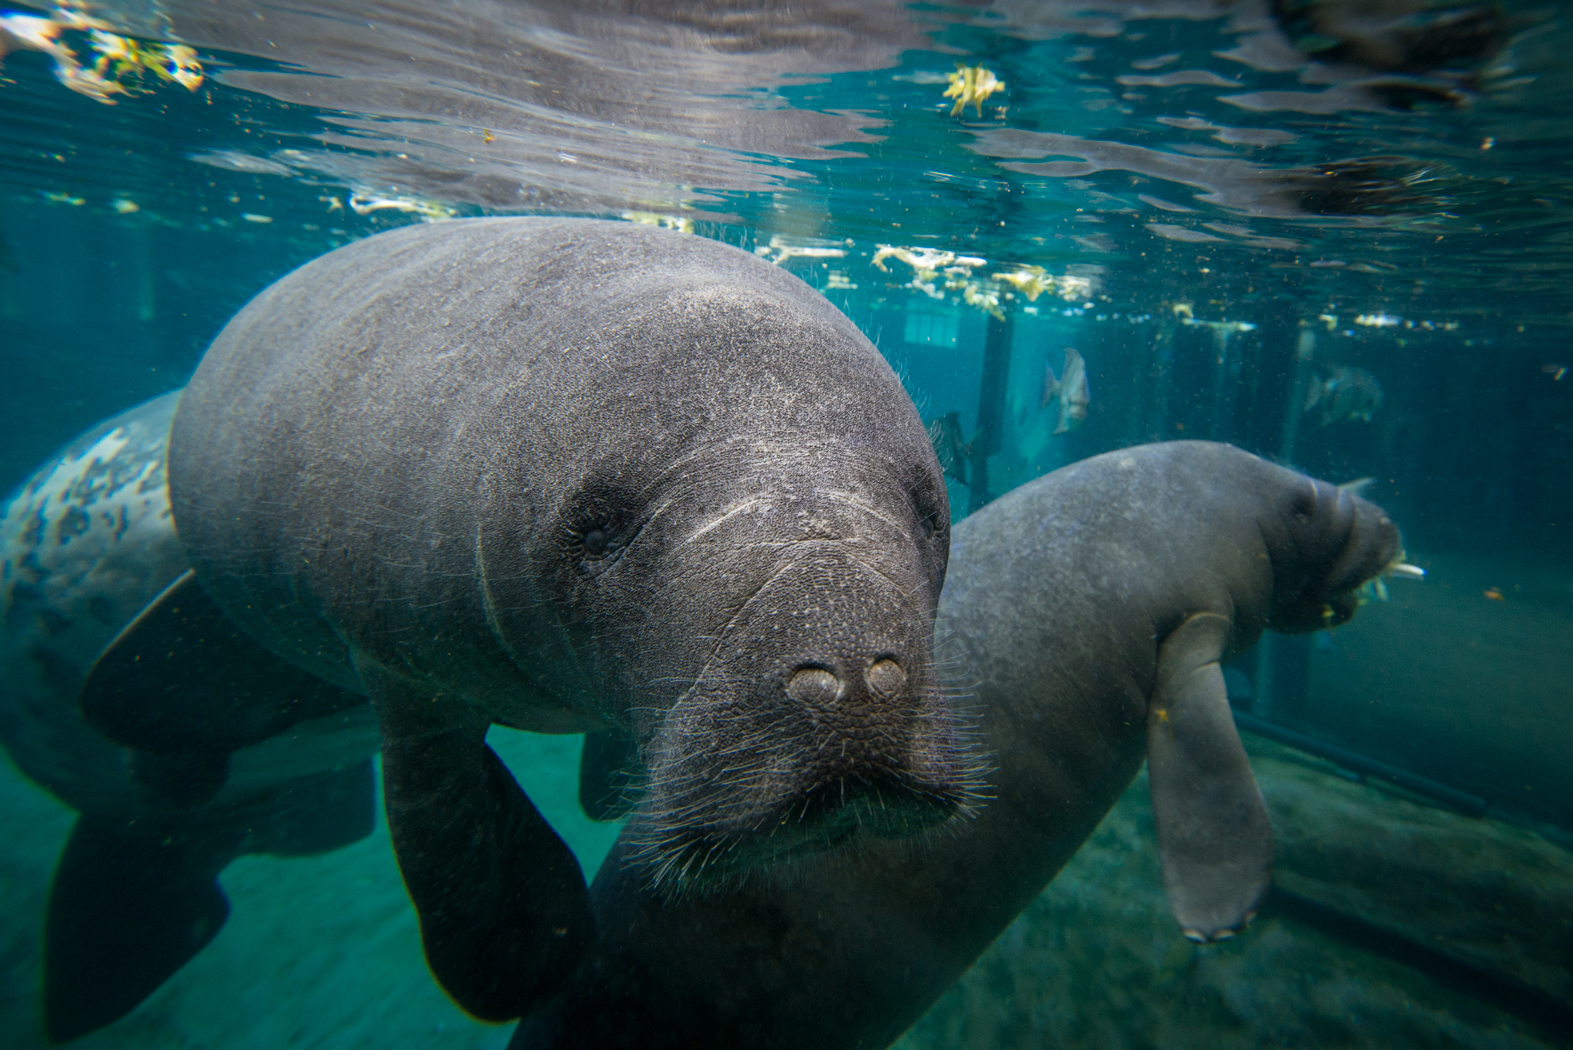 Manatees-8456---Grahm-S.-Jones.-Columbus-Zoo-and-Aquarium.jpg